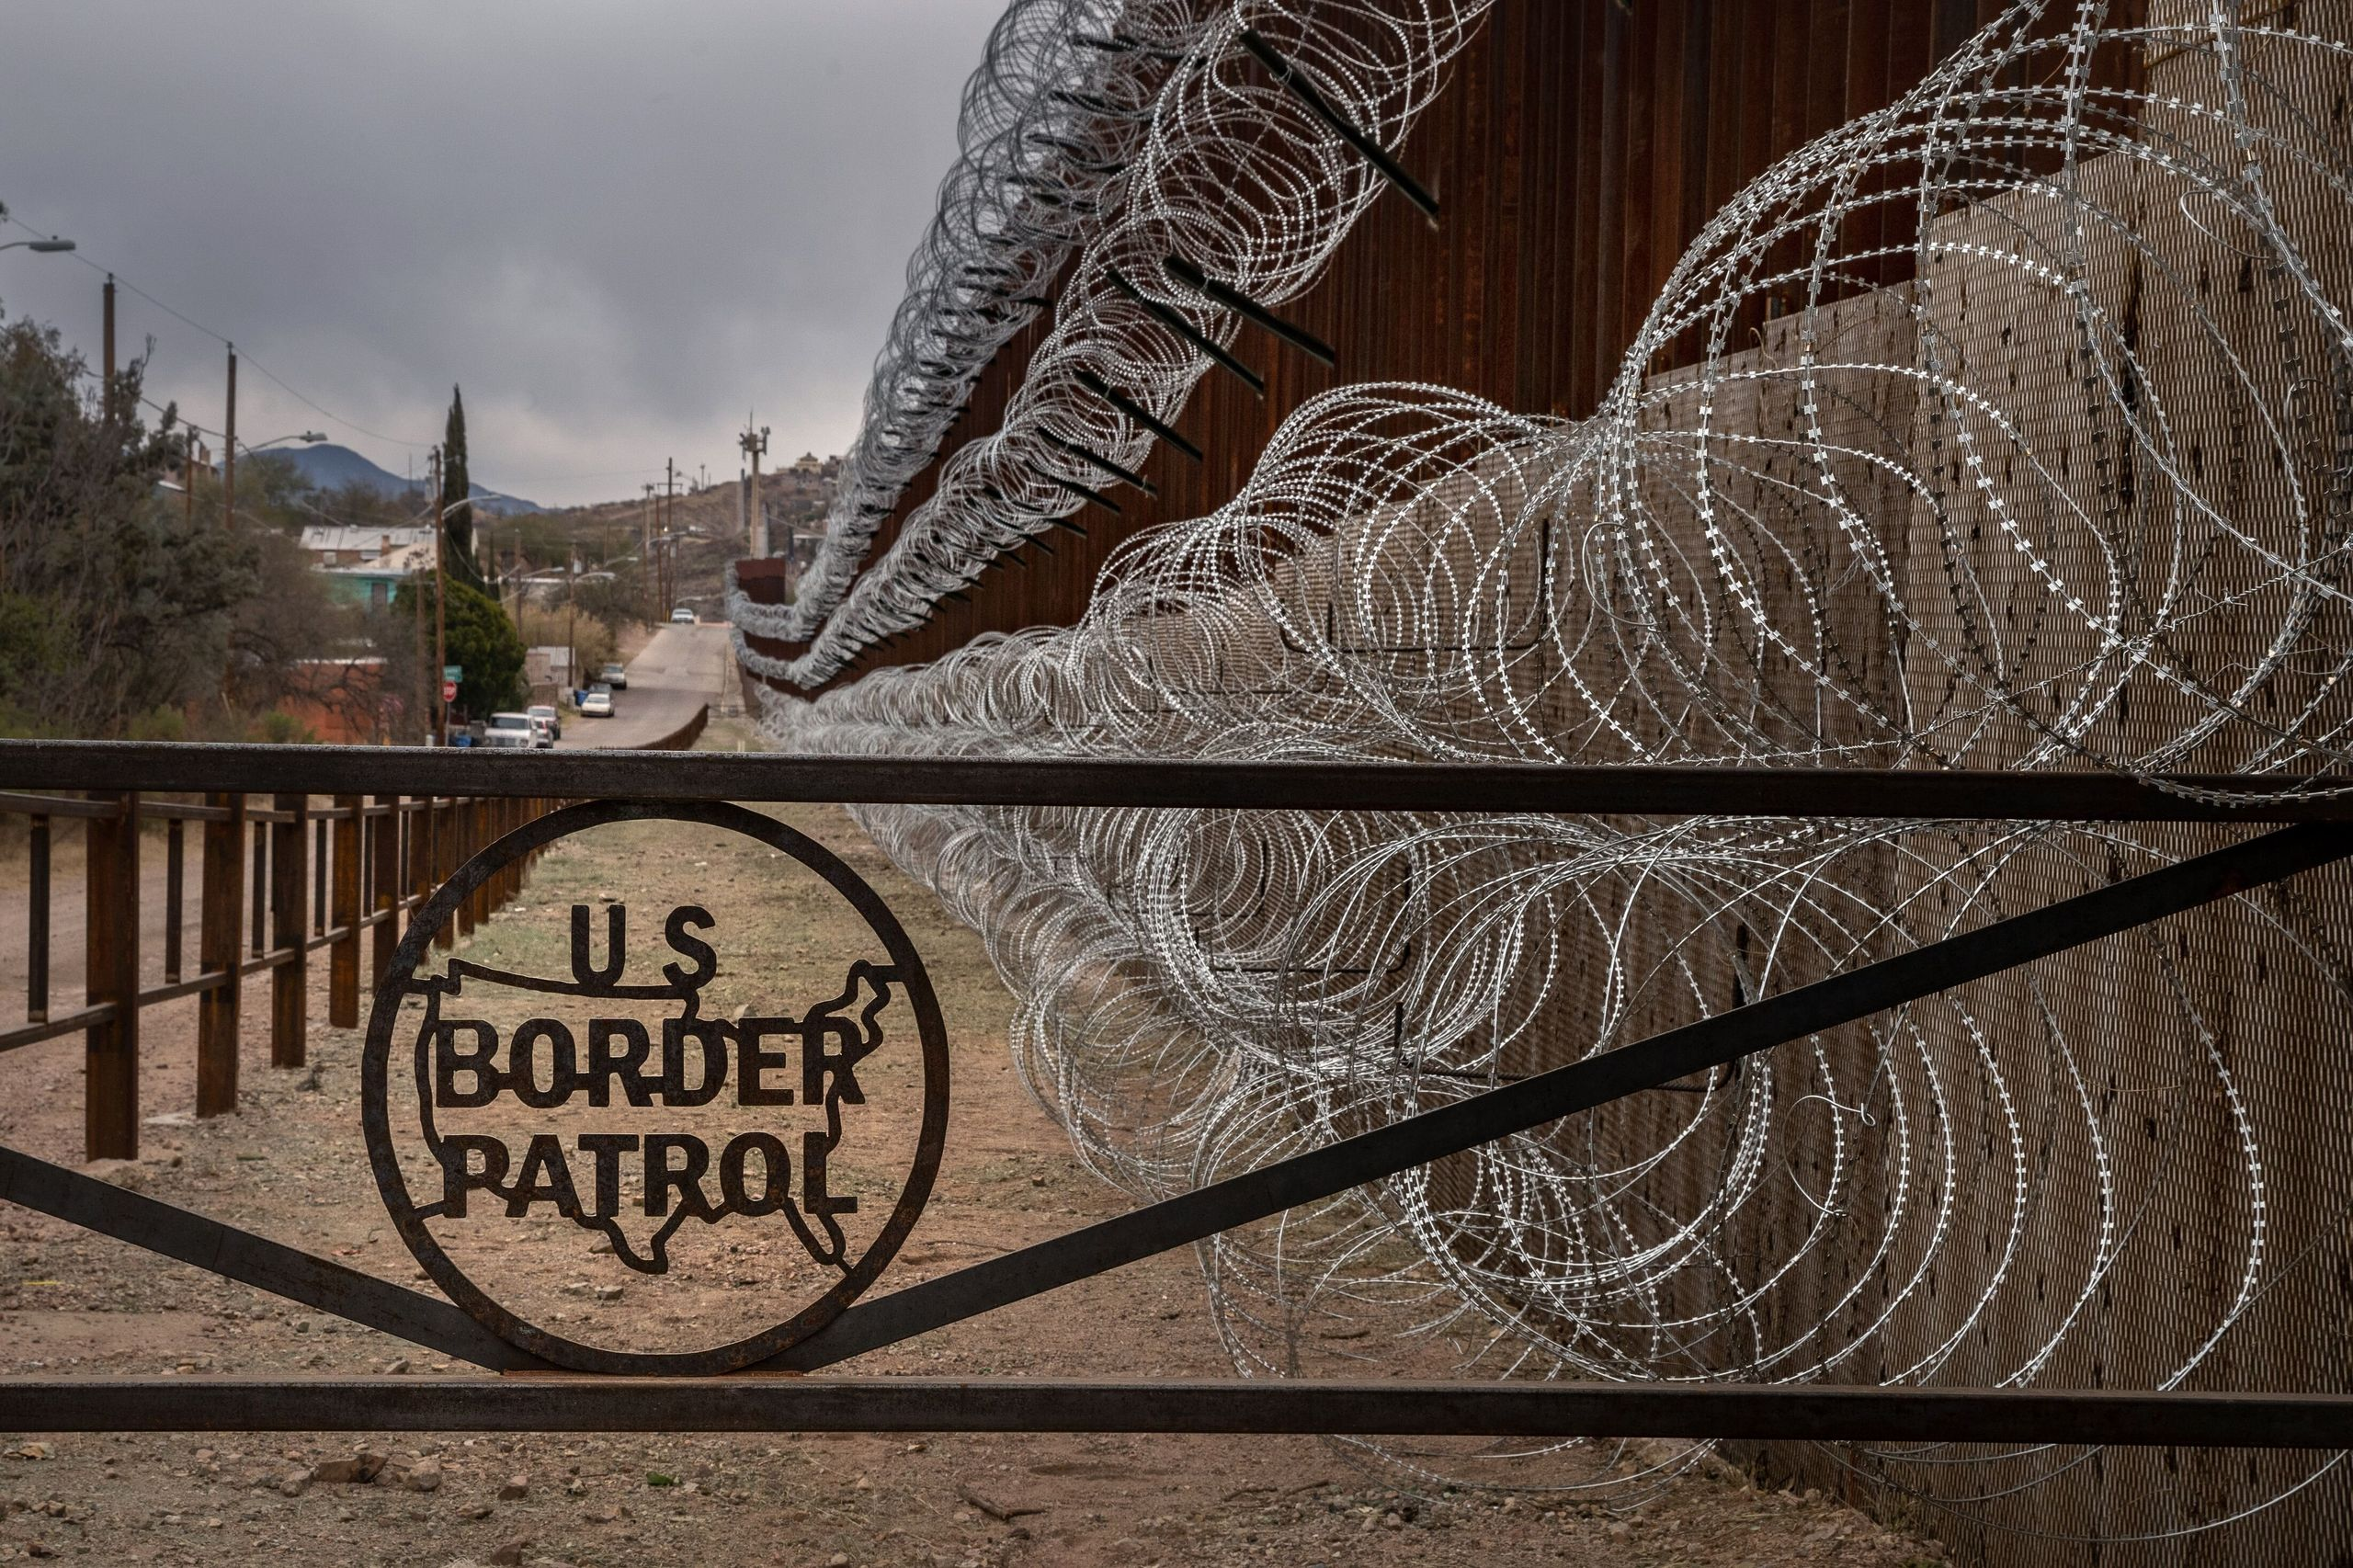 A metal fence marked with the U.S. Border Patrol insignia prevents people from getting close to the barbed/concertina wire co